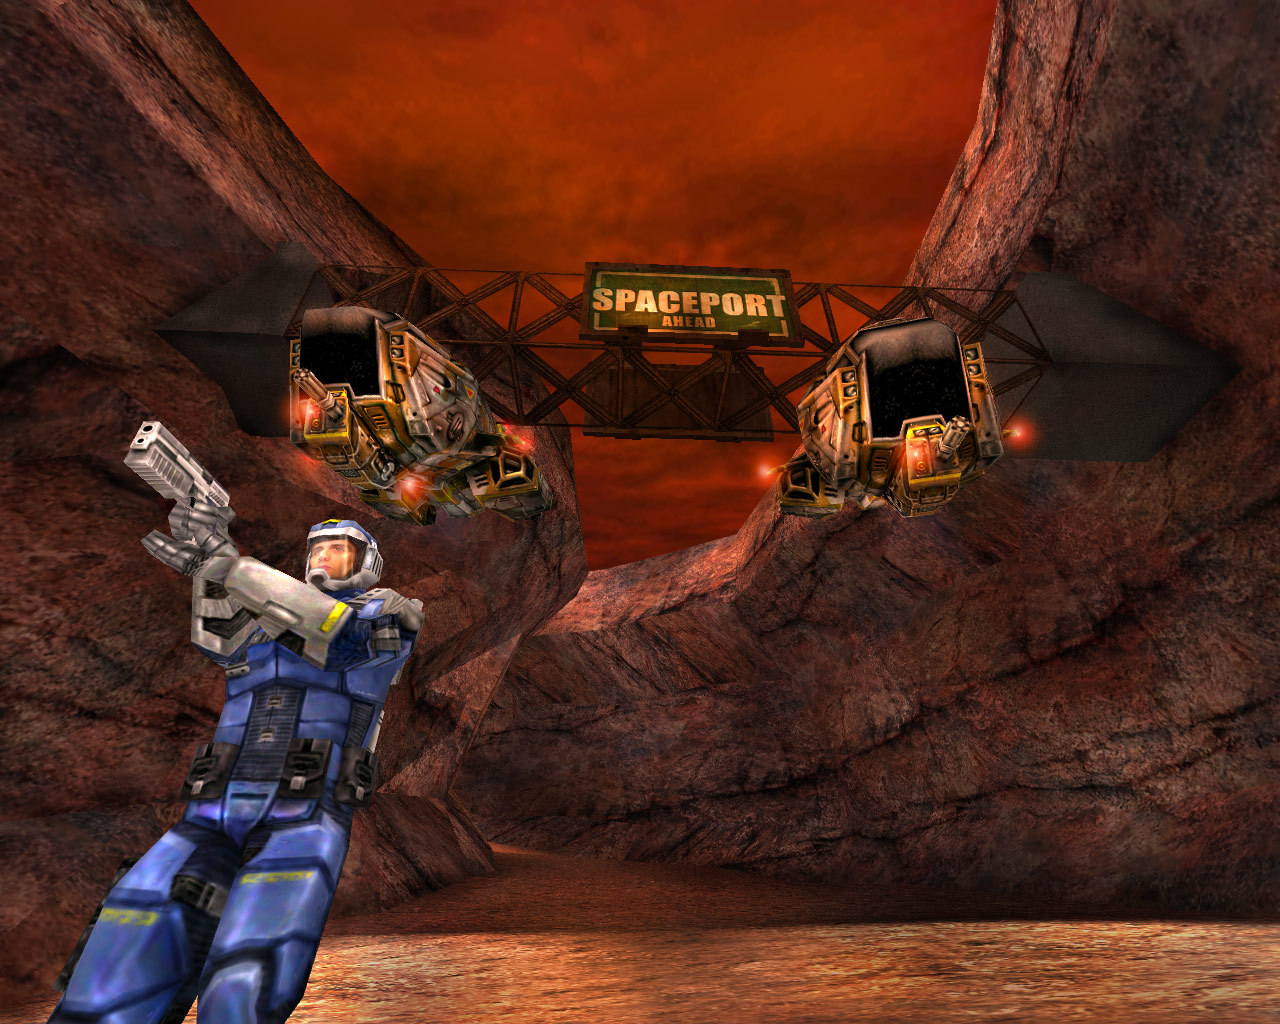 Faction Images red faction on steam